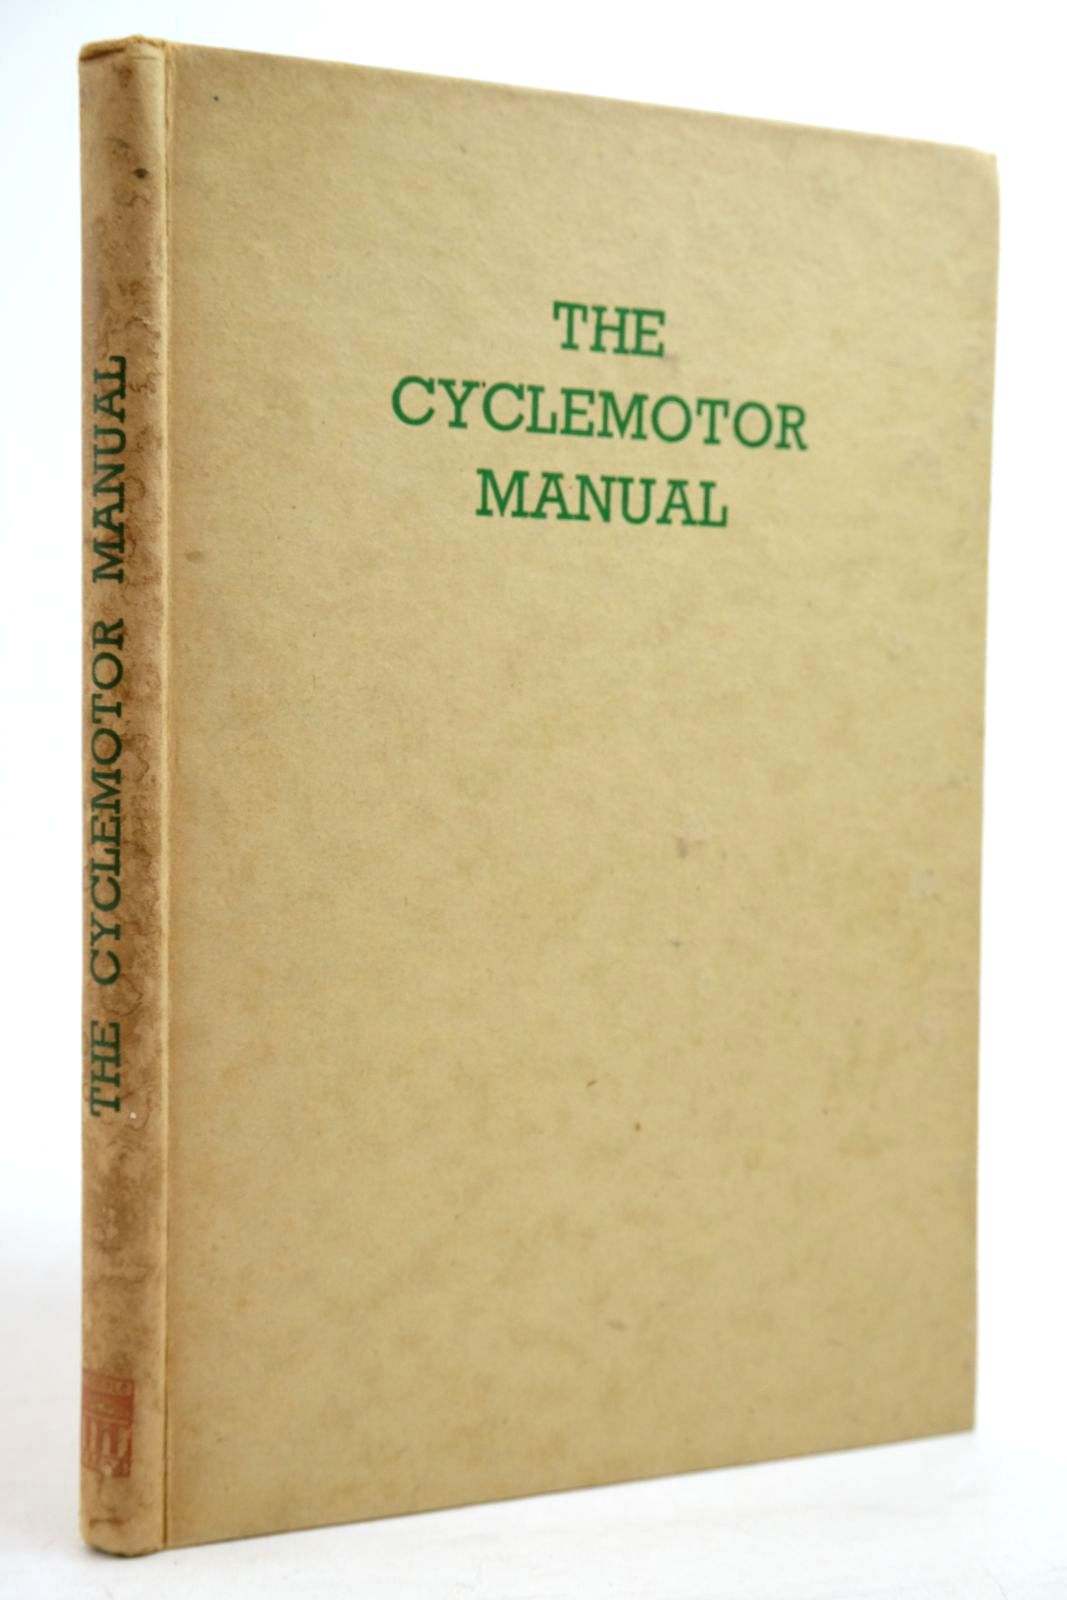 Photo of THE CYCLEMOTOR MANUAL published by Temple Press Limited (STOCK CODE: 2134618)  for sale by Stella & Rose's Books